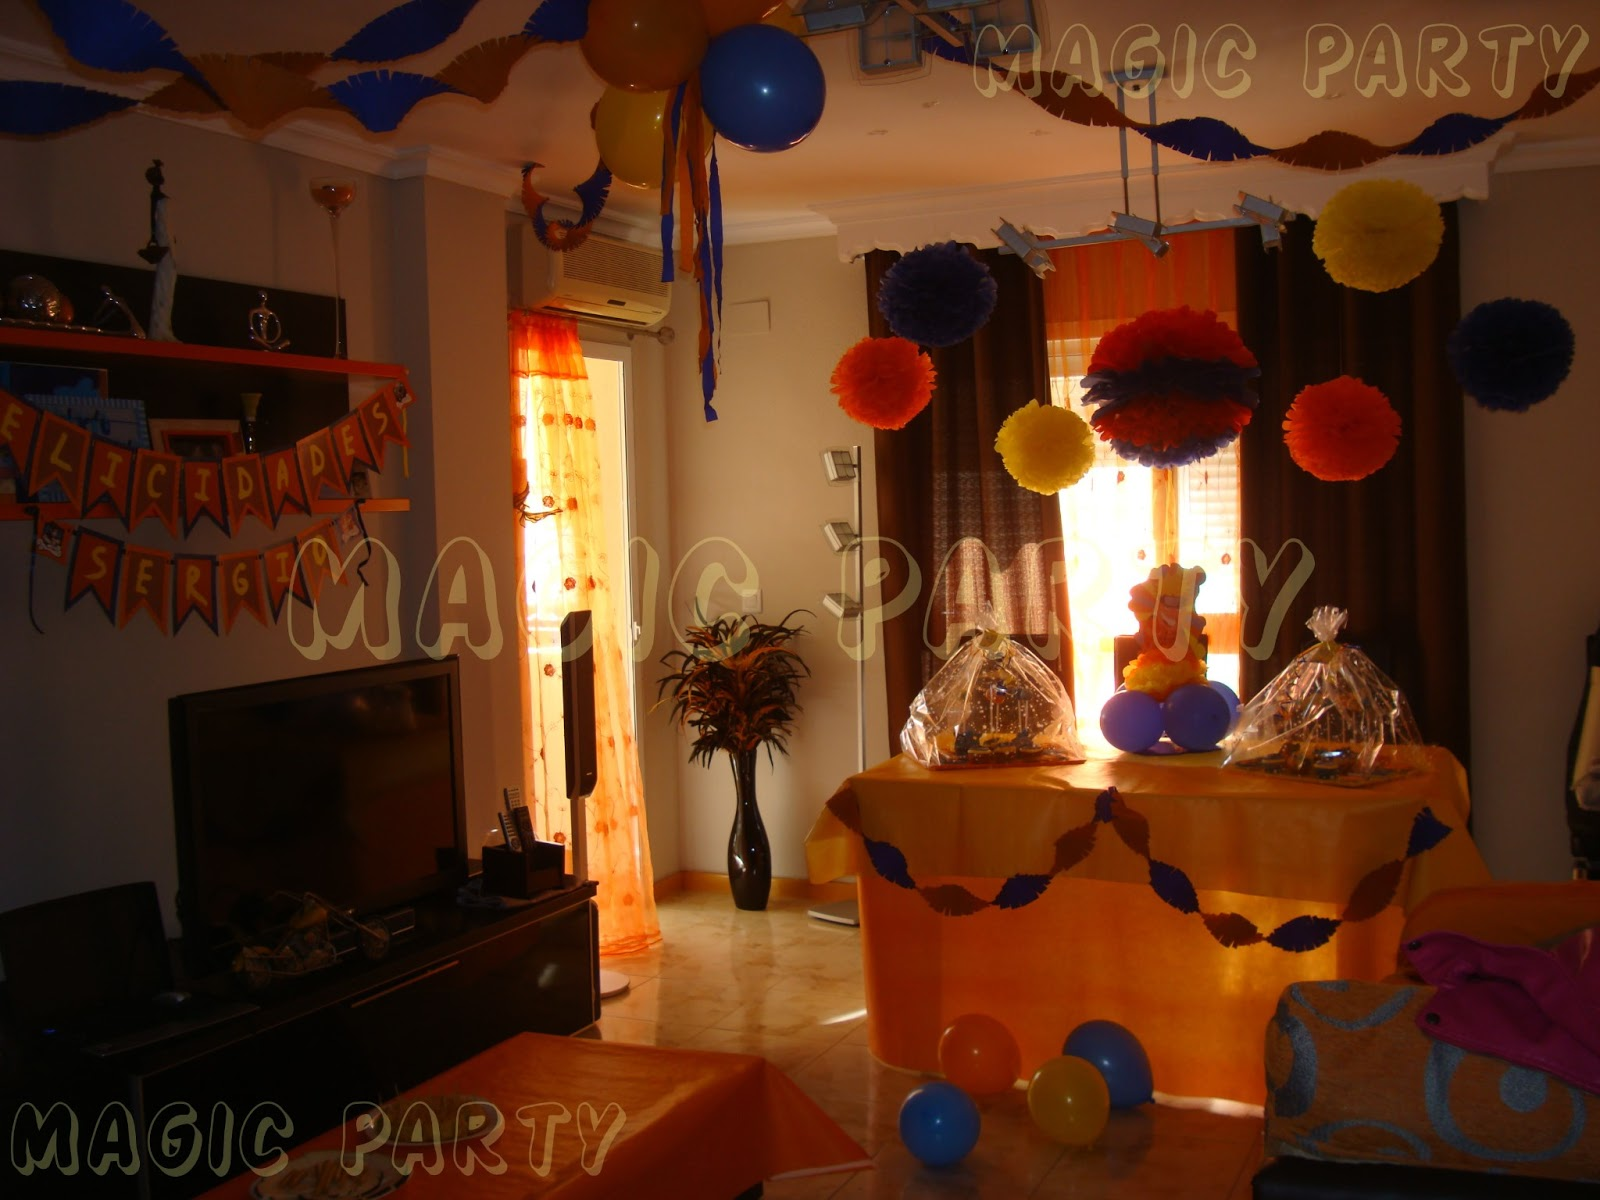 Magic party cumplea os de naruto - Decoracion fiesta sorpresa ...